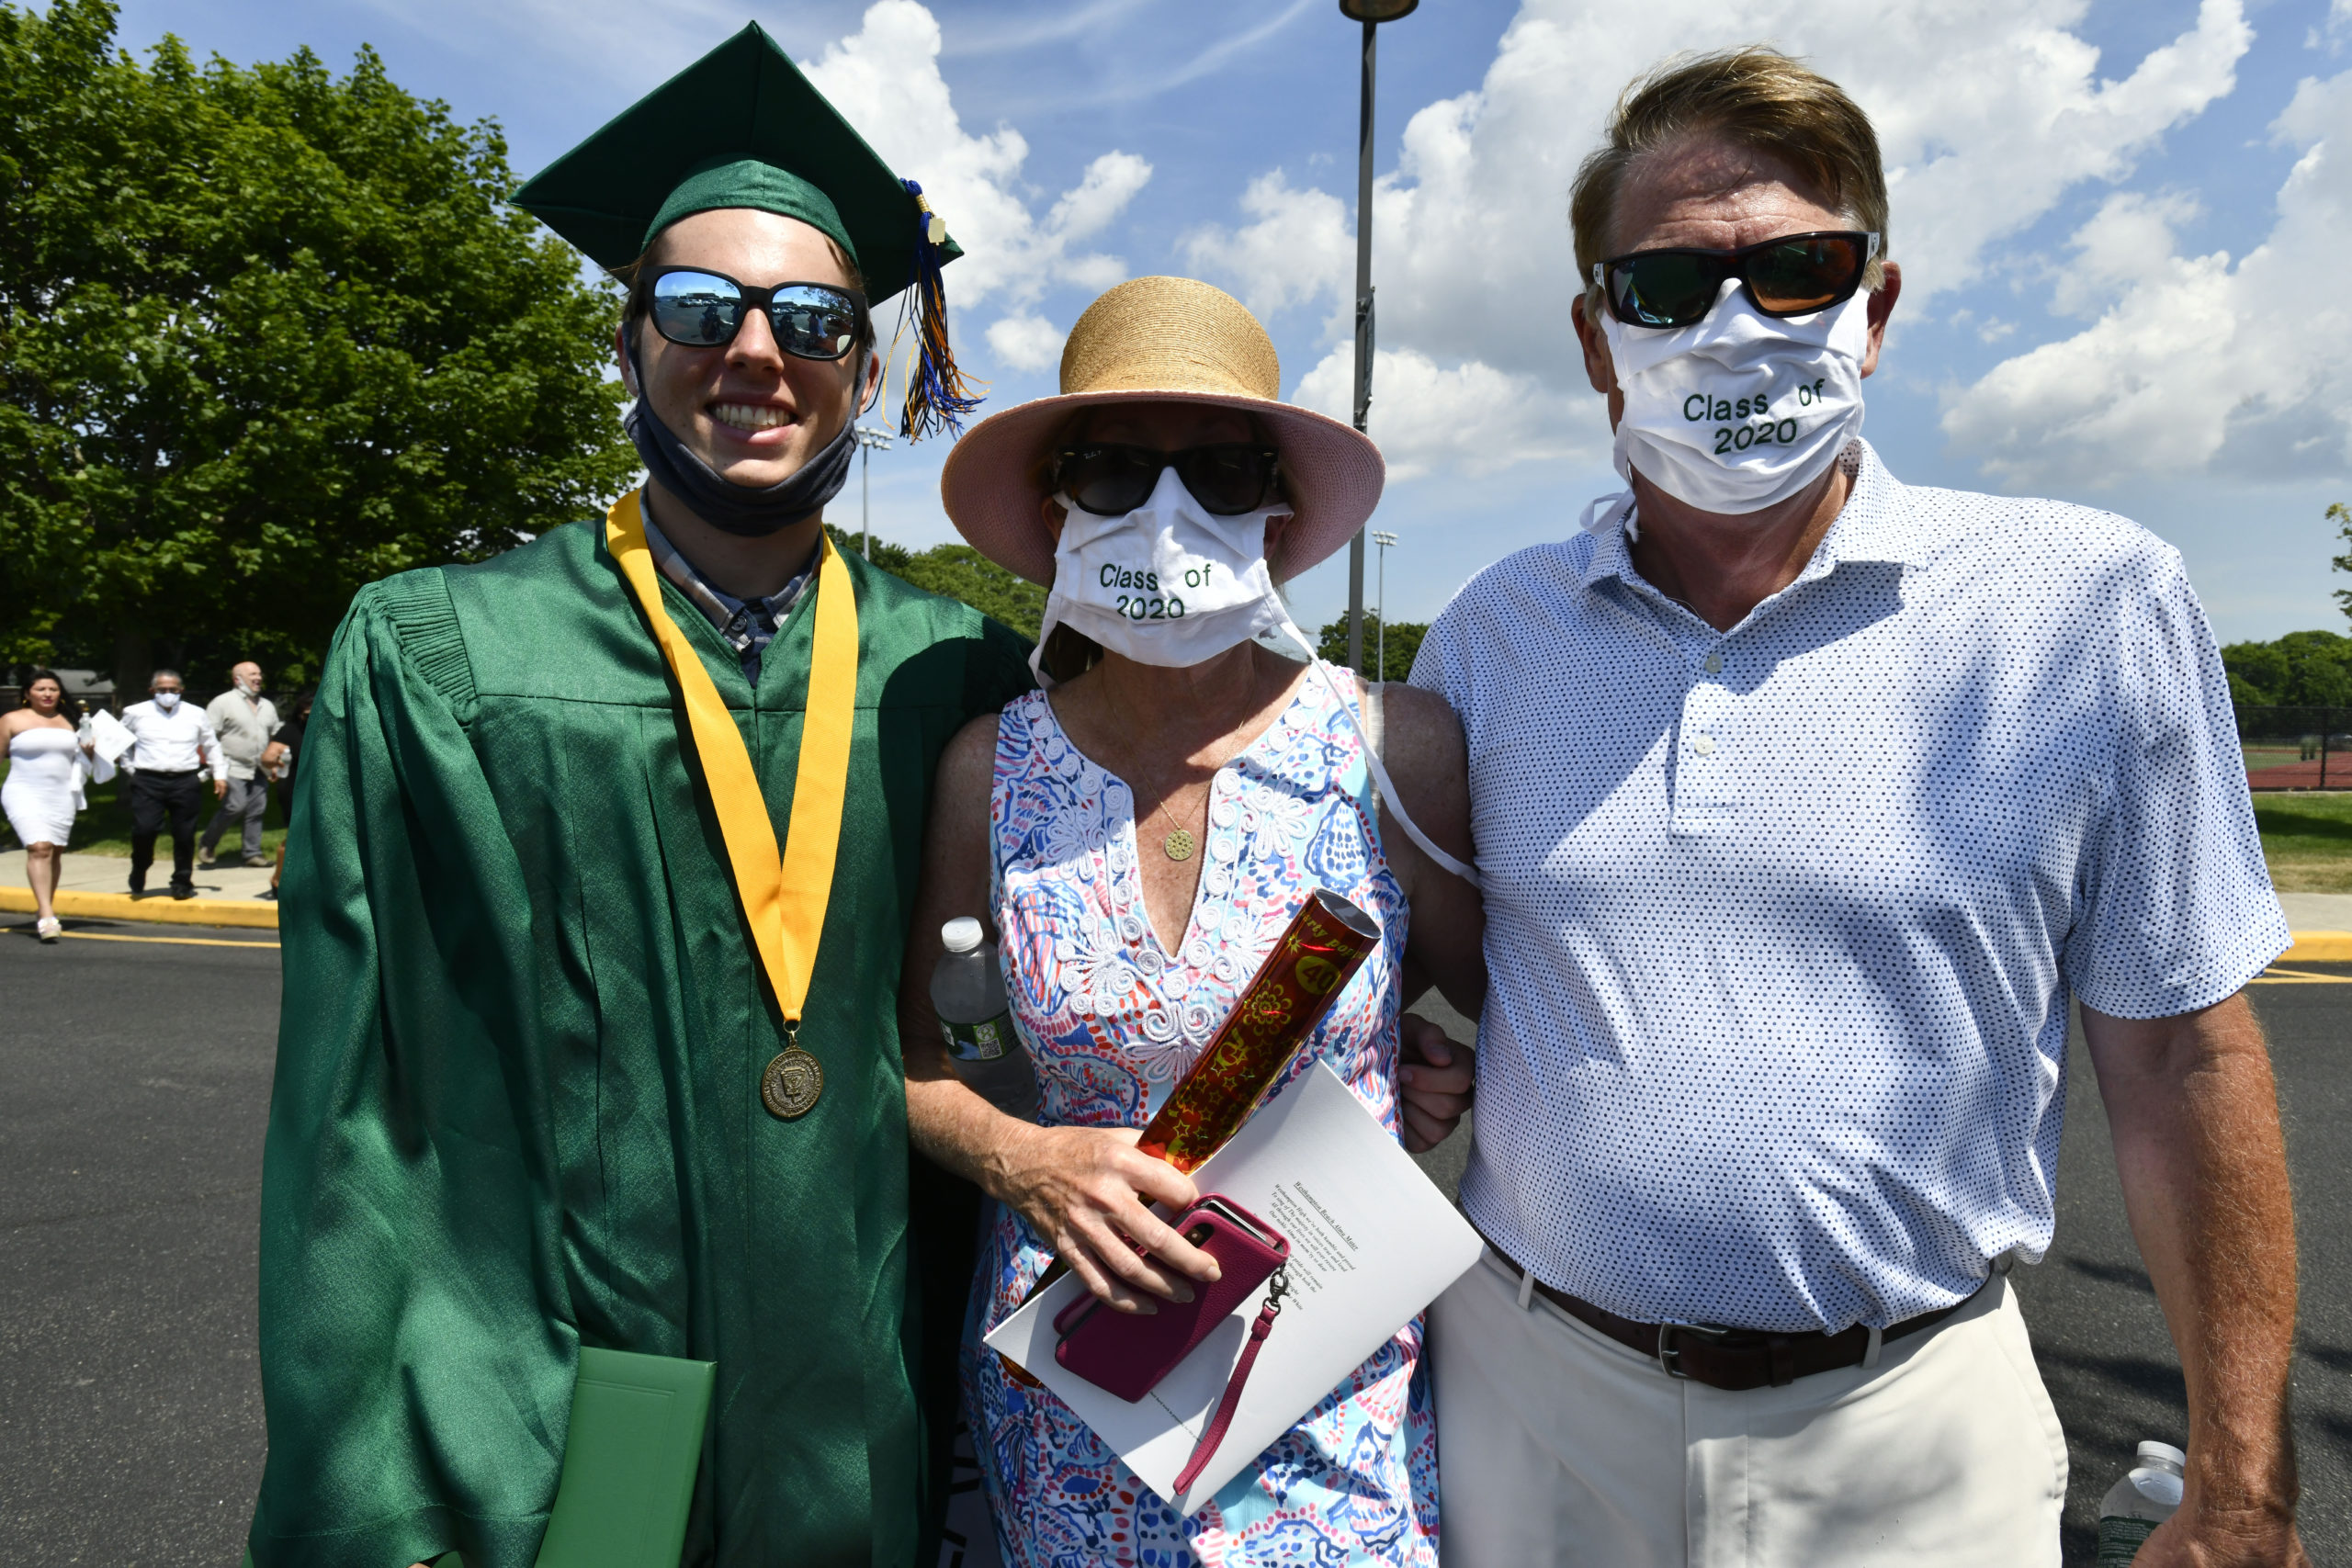 Westhampton Beach graduate Blake Busking with his parents Deborah and Bob.